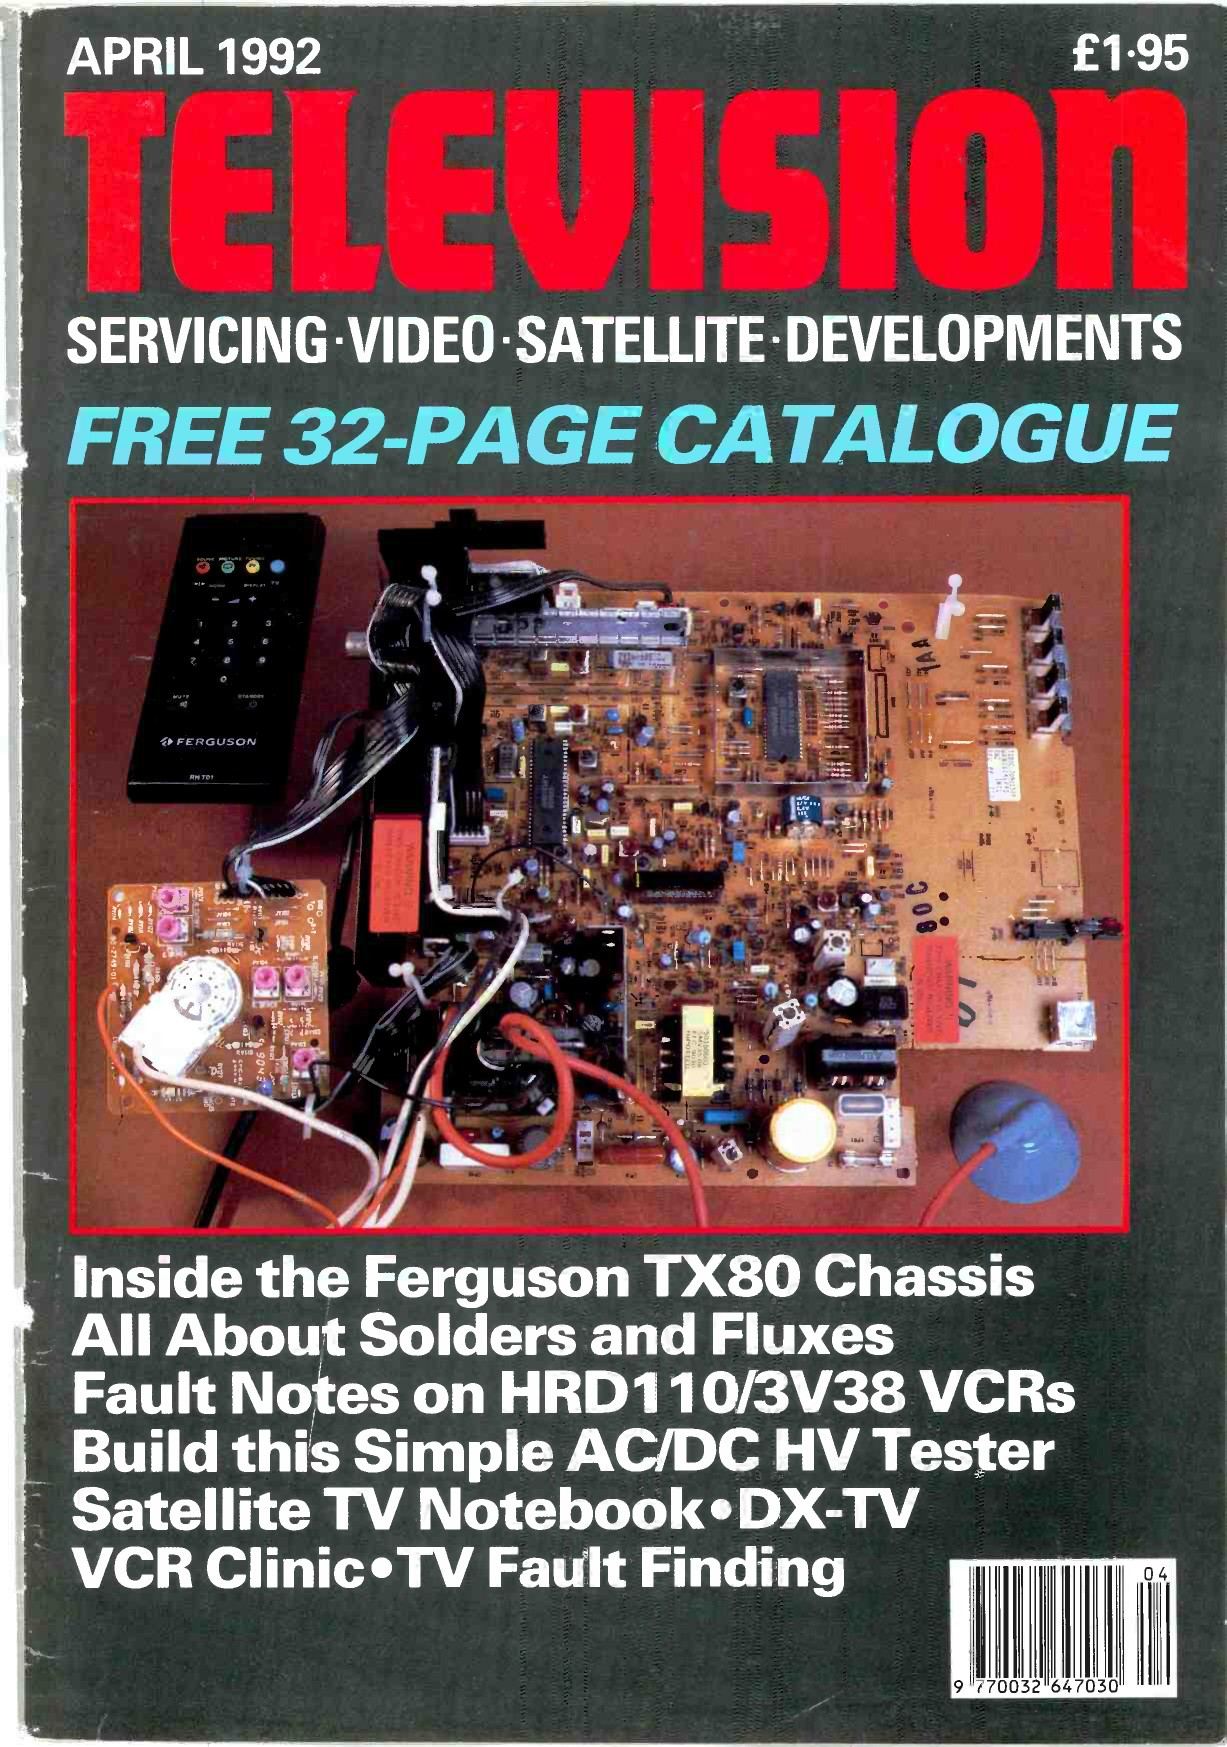 Tda 2040 Stereo Schematic Free 32 Page Catalogue American Radio History Of Tda 2040 Stereo Schematic